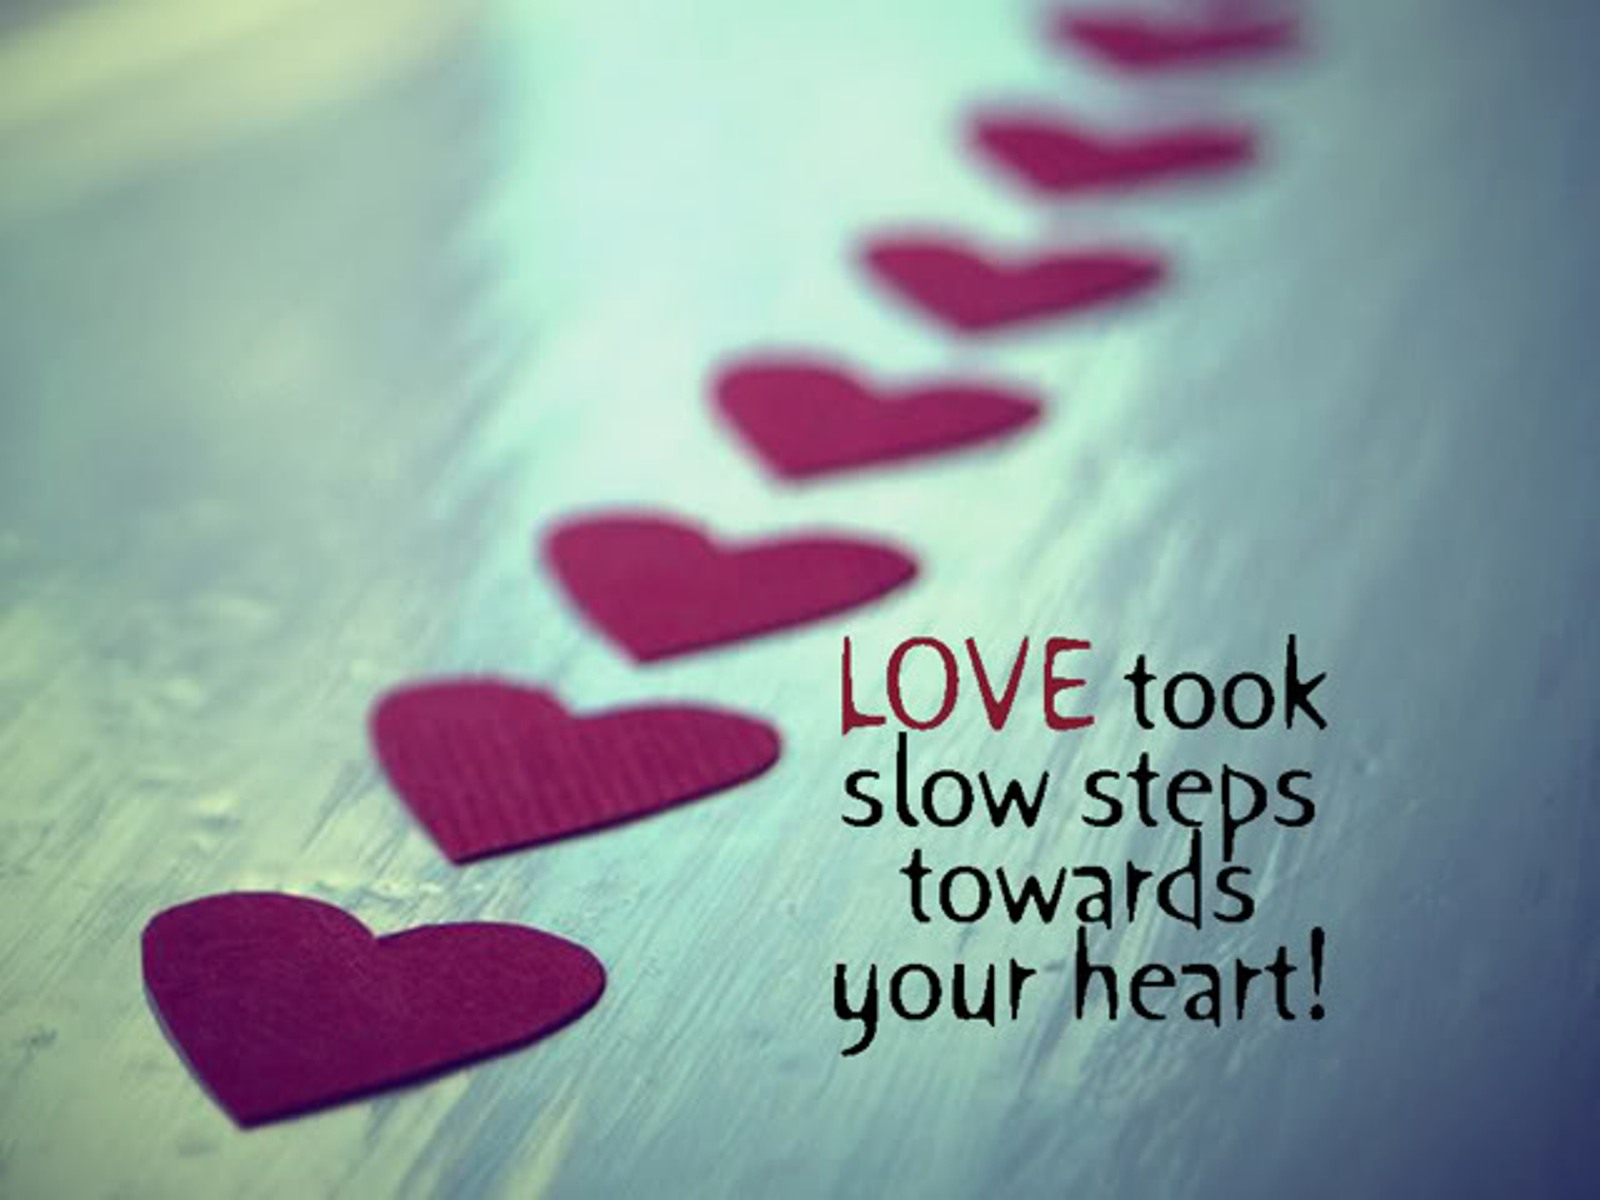 Cute Quotes Romantic Love Cute Quotes Wallpapers 1600x1200